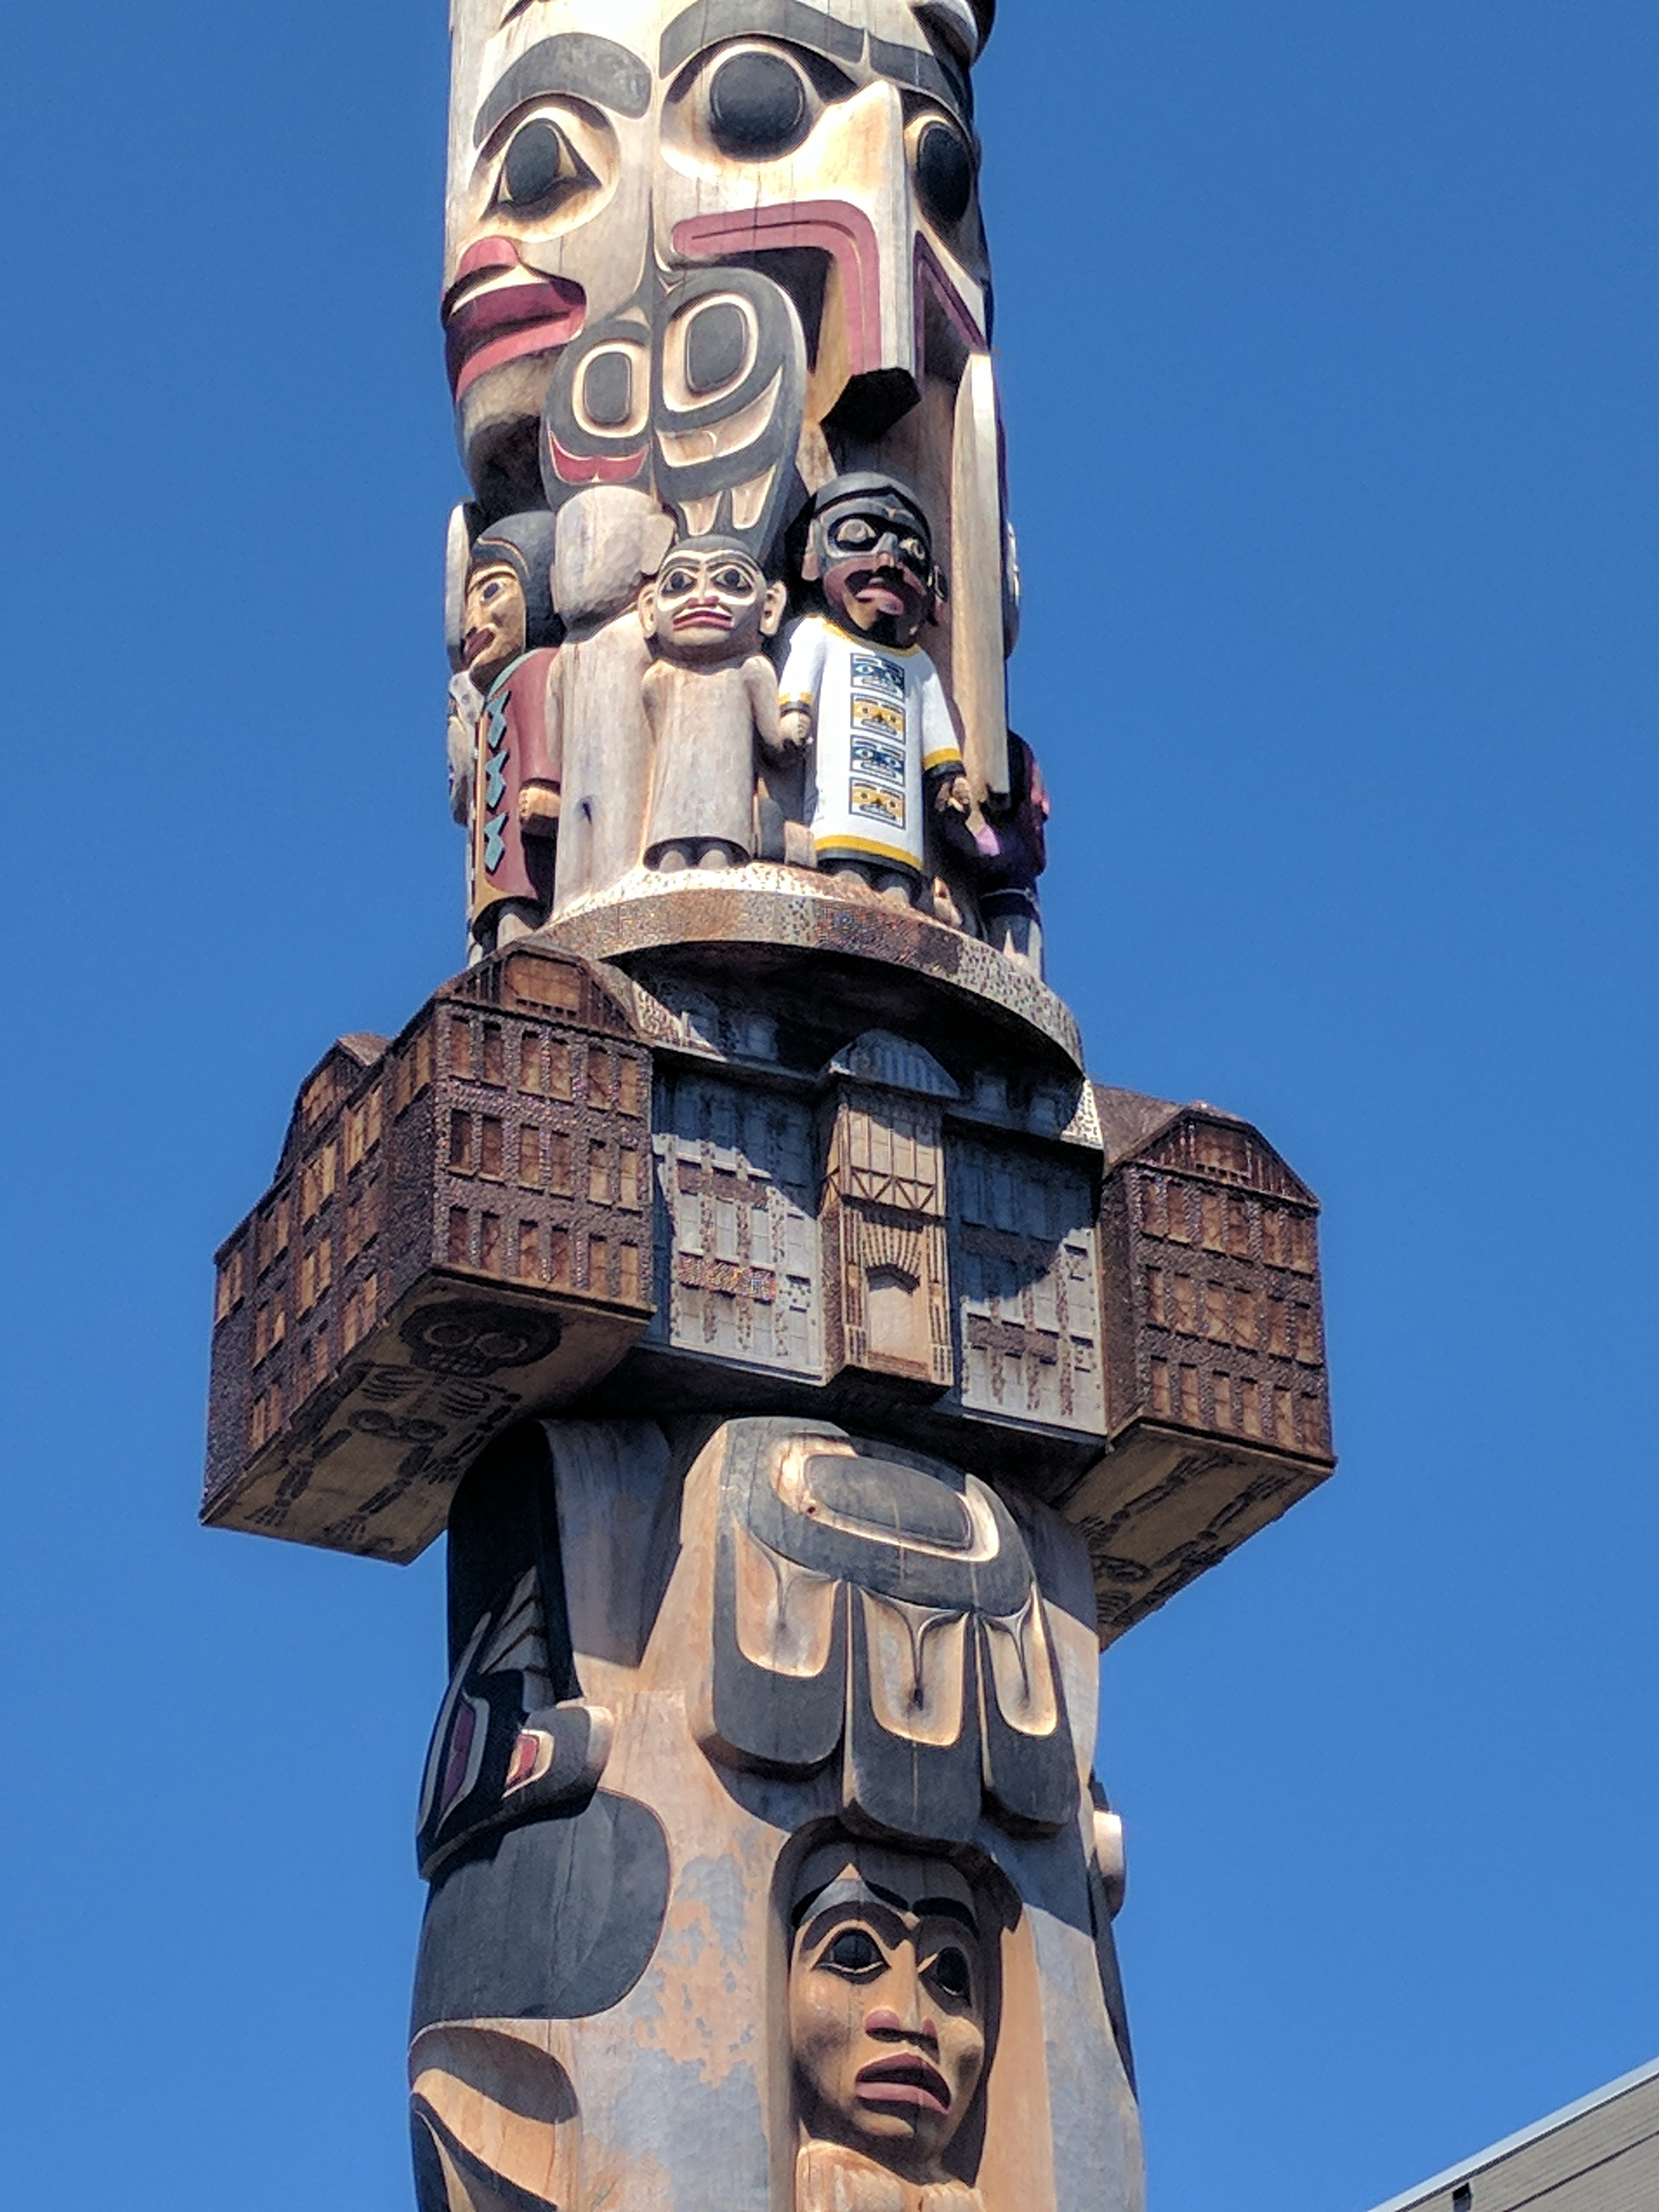 The Reconciliation Story Pole at the University of British Columbia, Canada. Carved by 7idansuu (Edenshaw) James Hart (Haida), it depicts Indigenous childhood interrupted by imposed schooling.